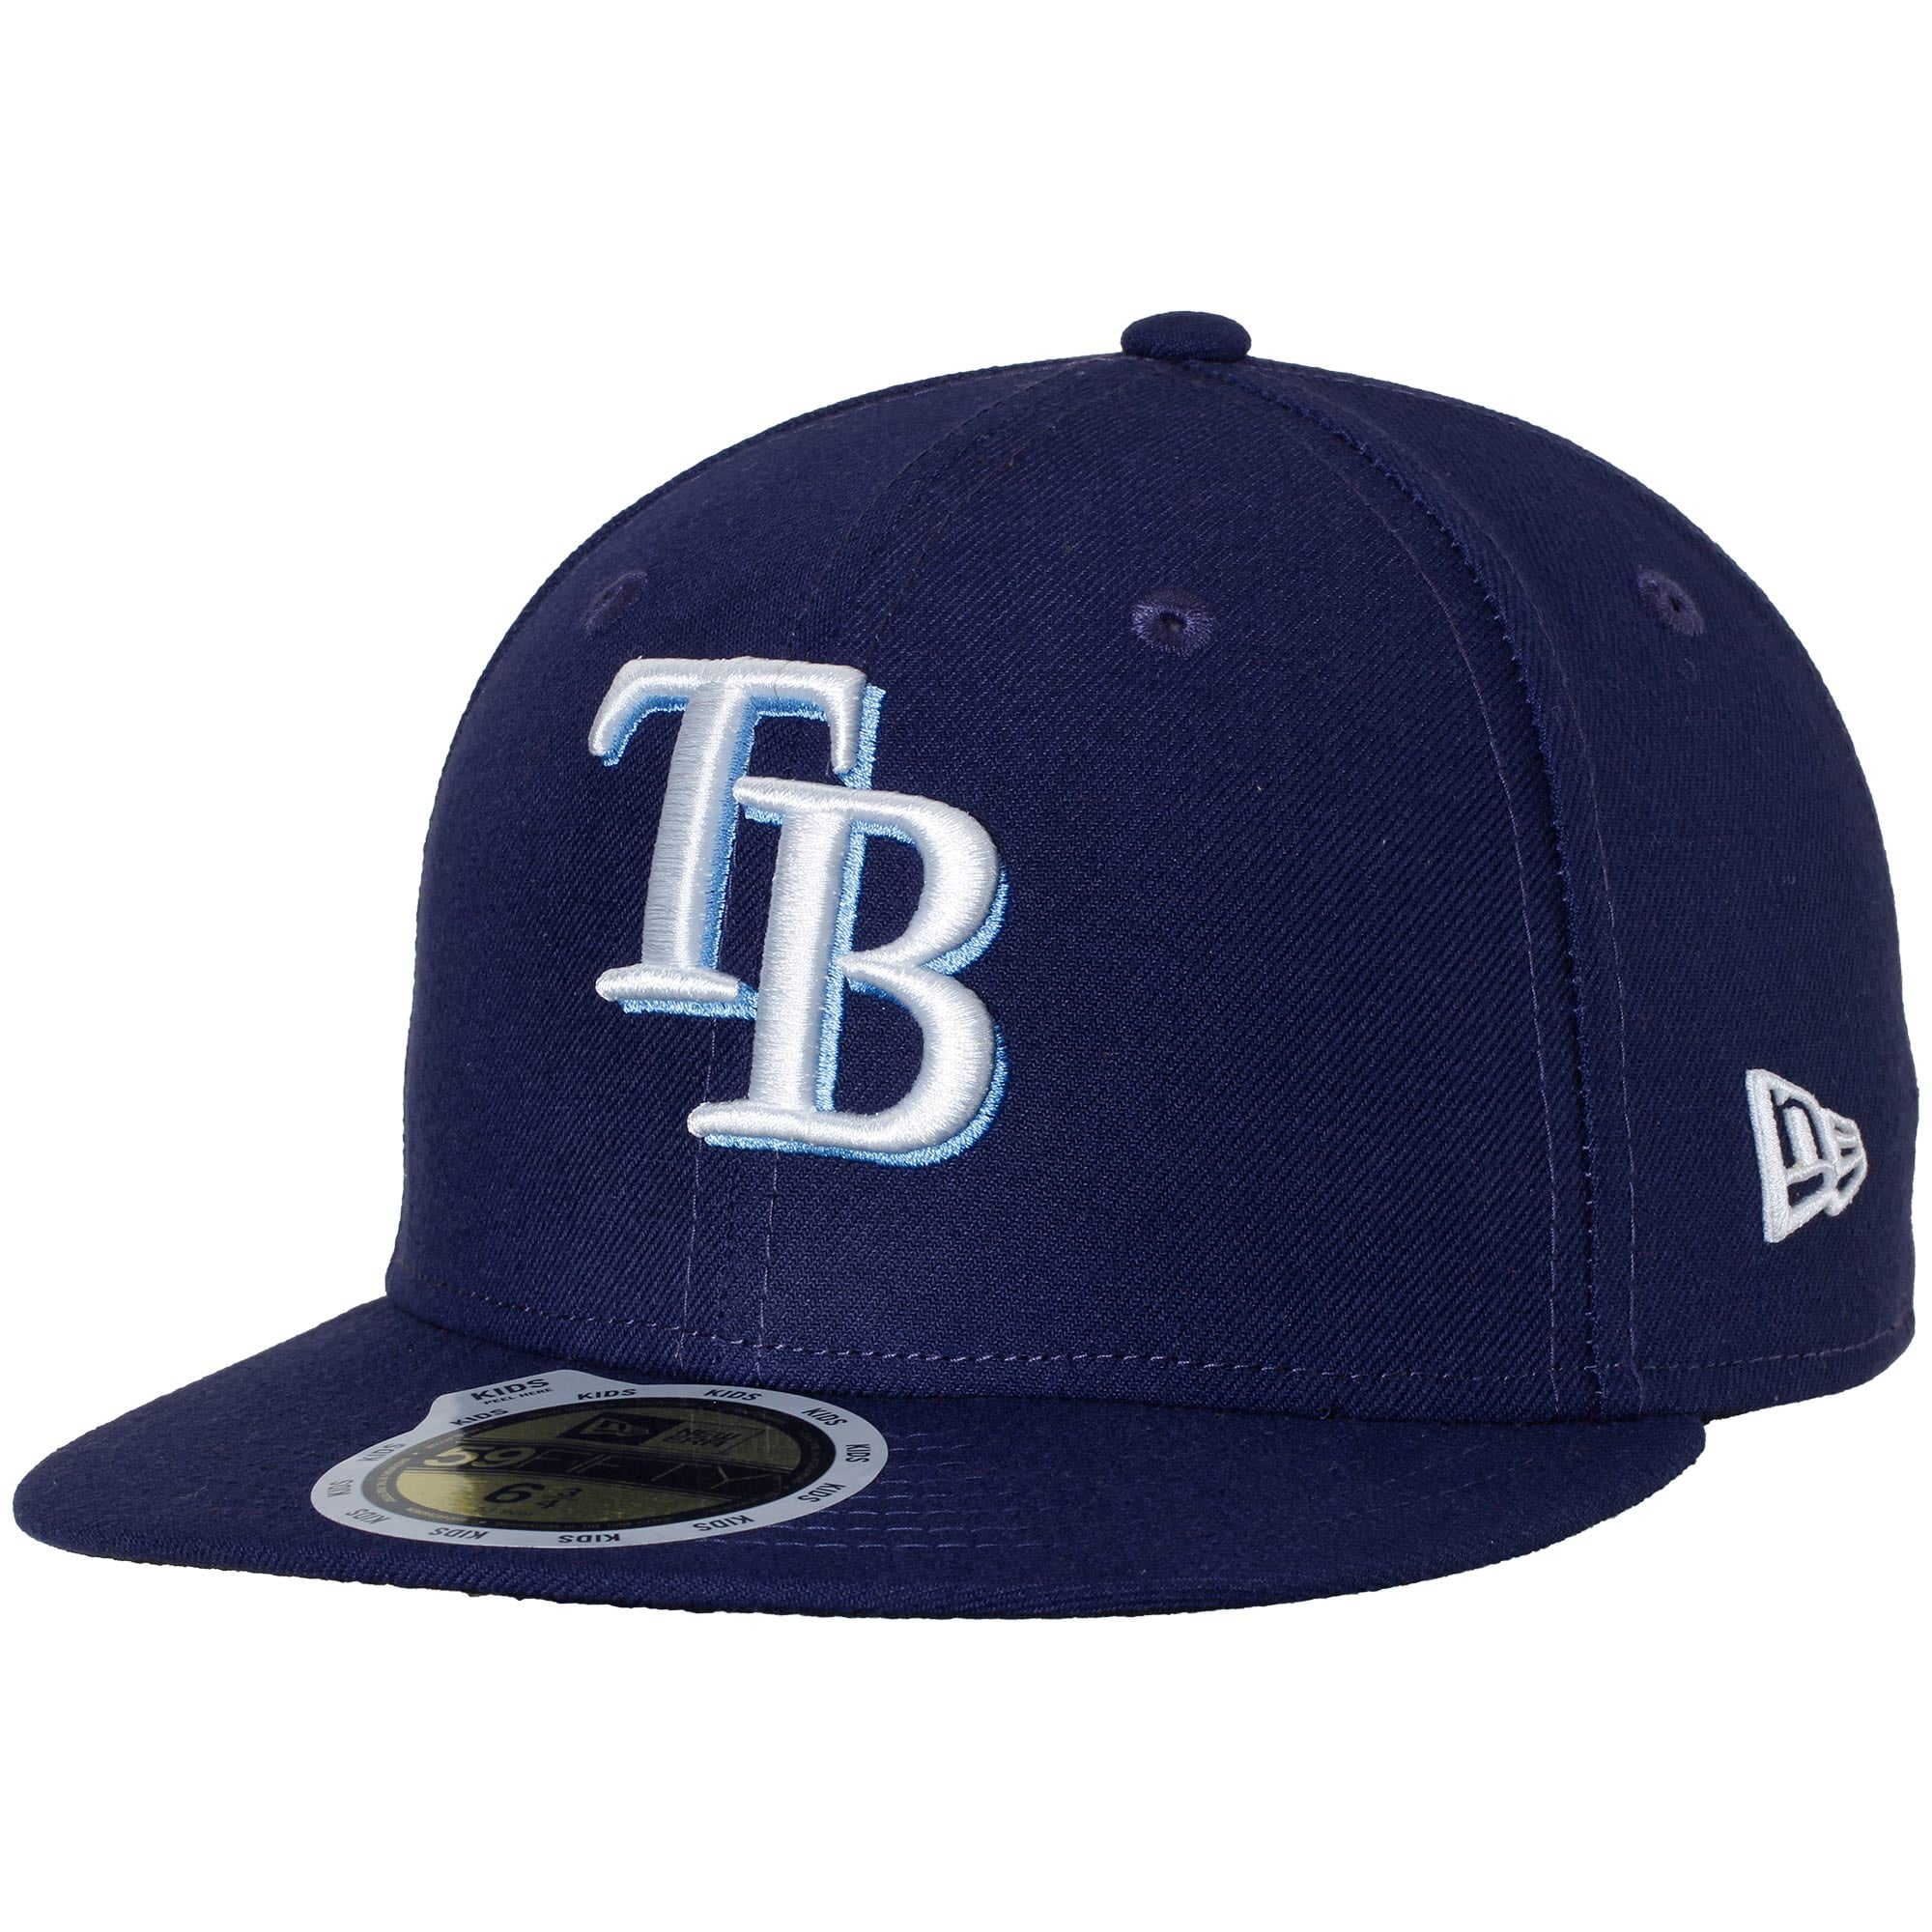 Tampa Bay Rays New Era Youth Authentic Collection On-Field Game 59FIFTY Fitted Hat - Navy